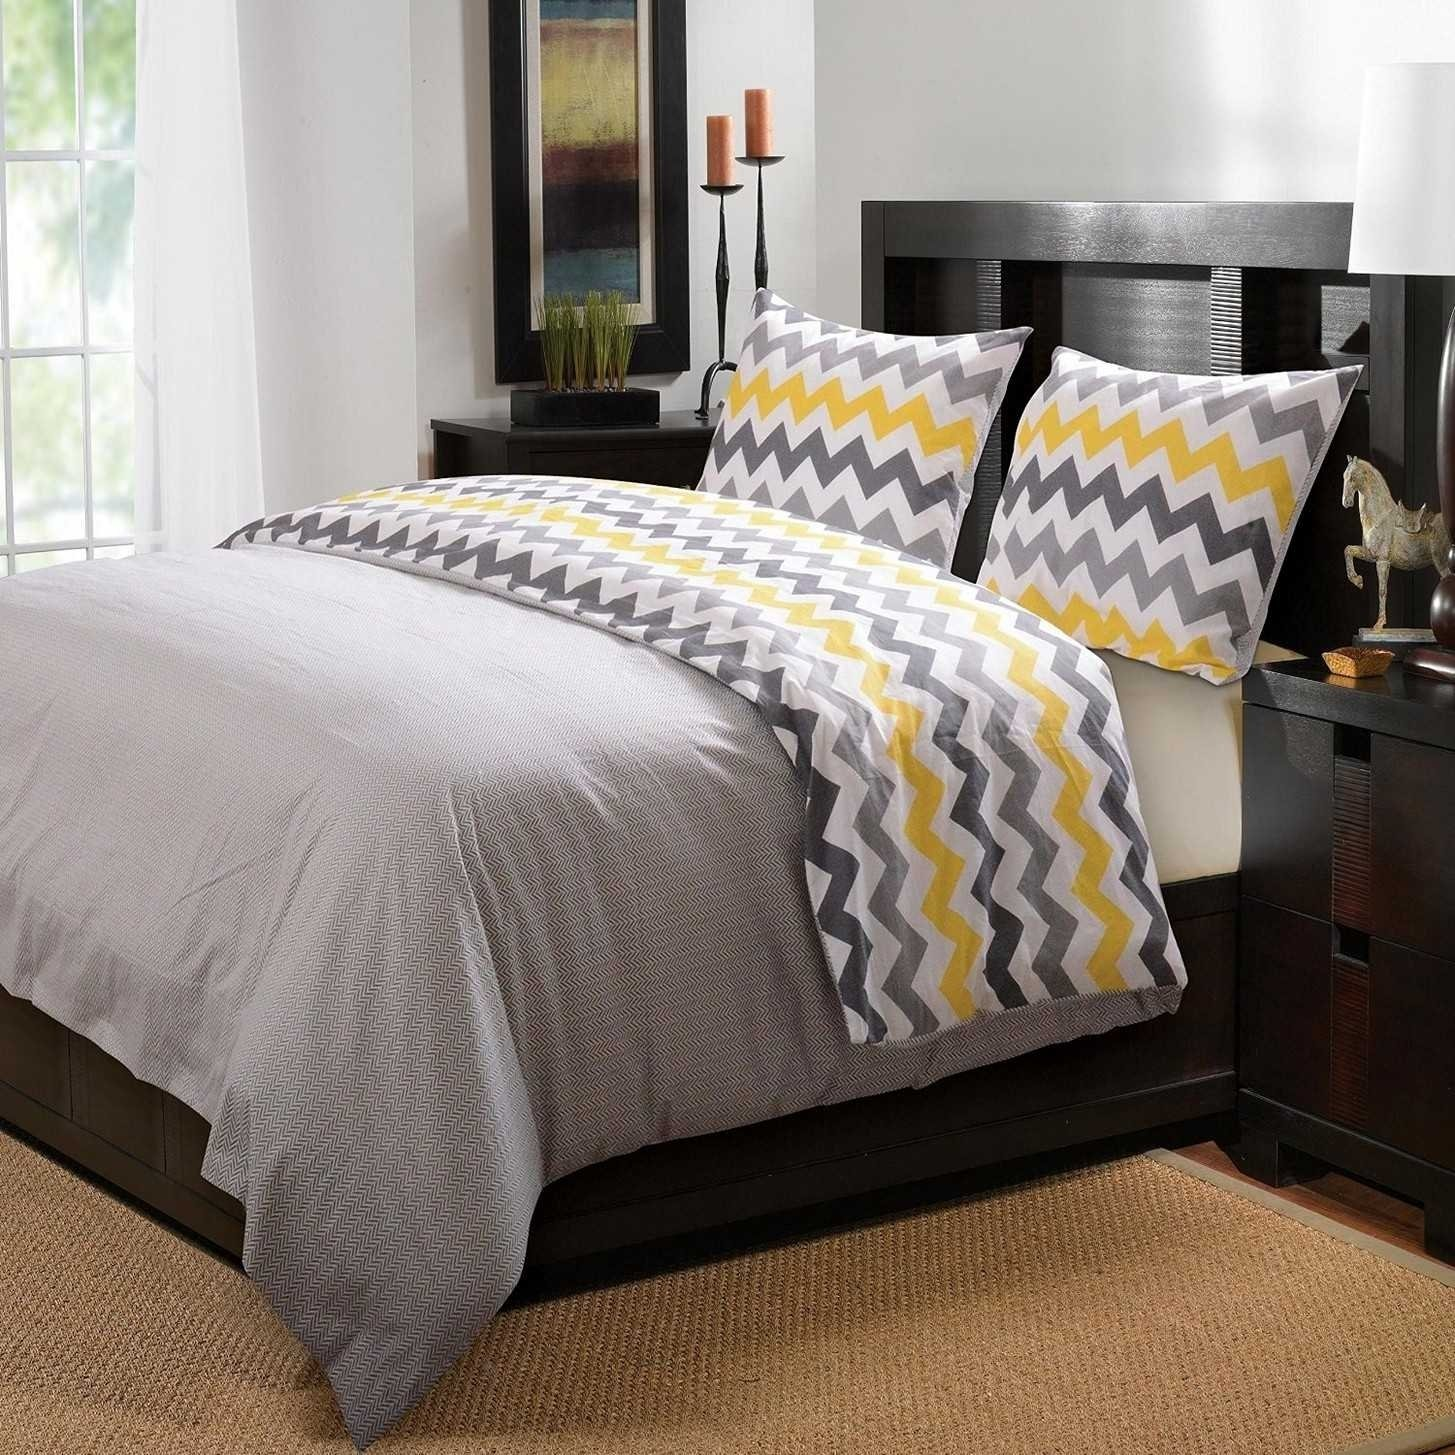 10 Attractive Yellow And Gray Bedroom Ideas stunning yellow gray and white bedroom ideas also bathrooms shower 2020